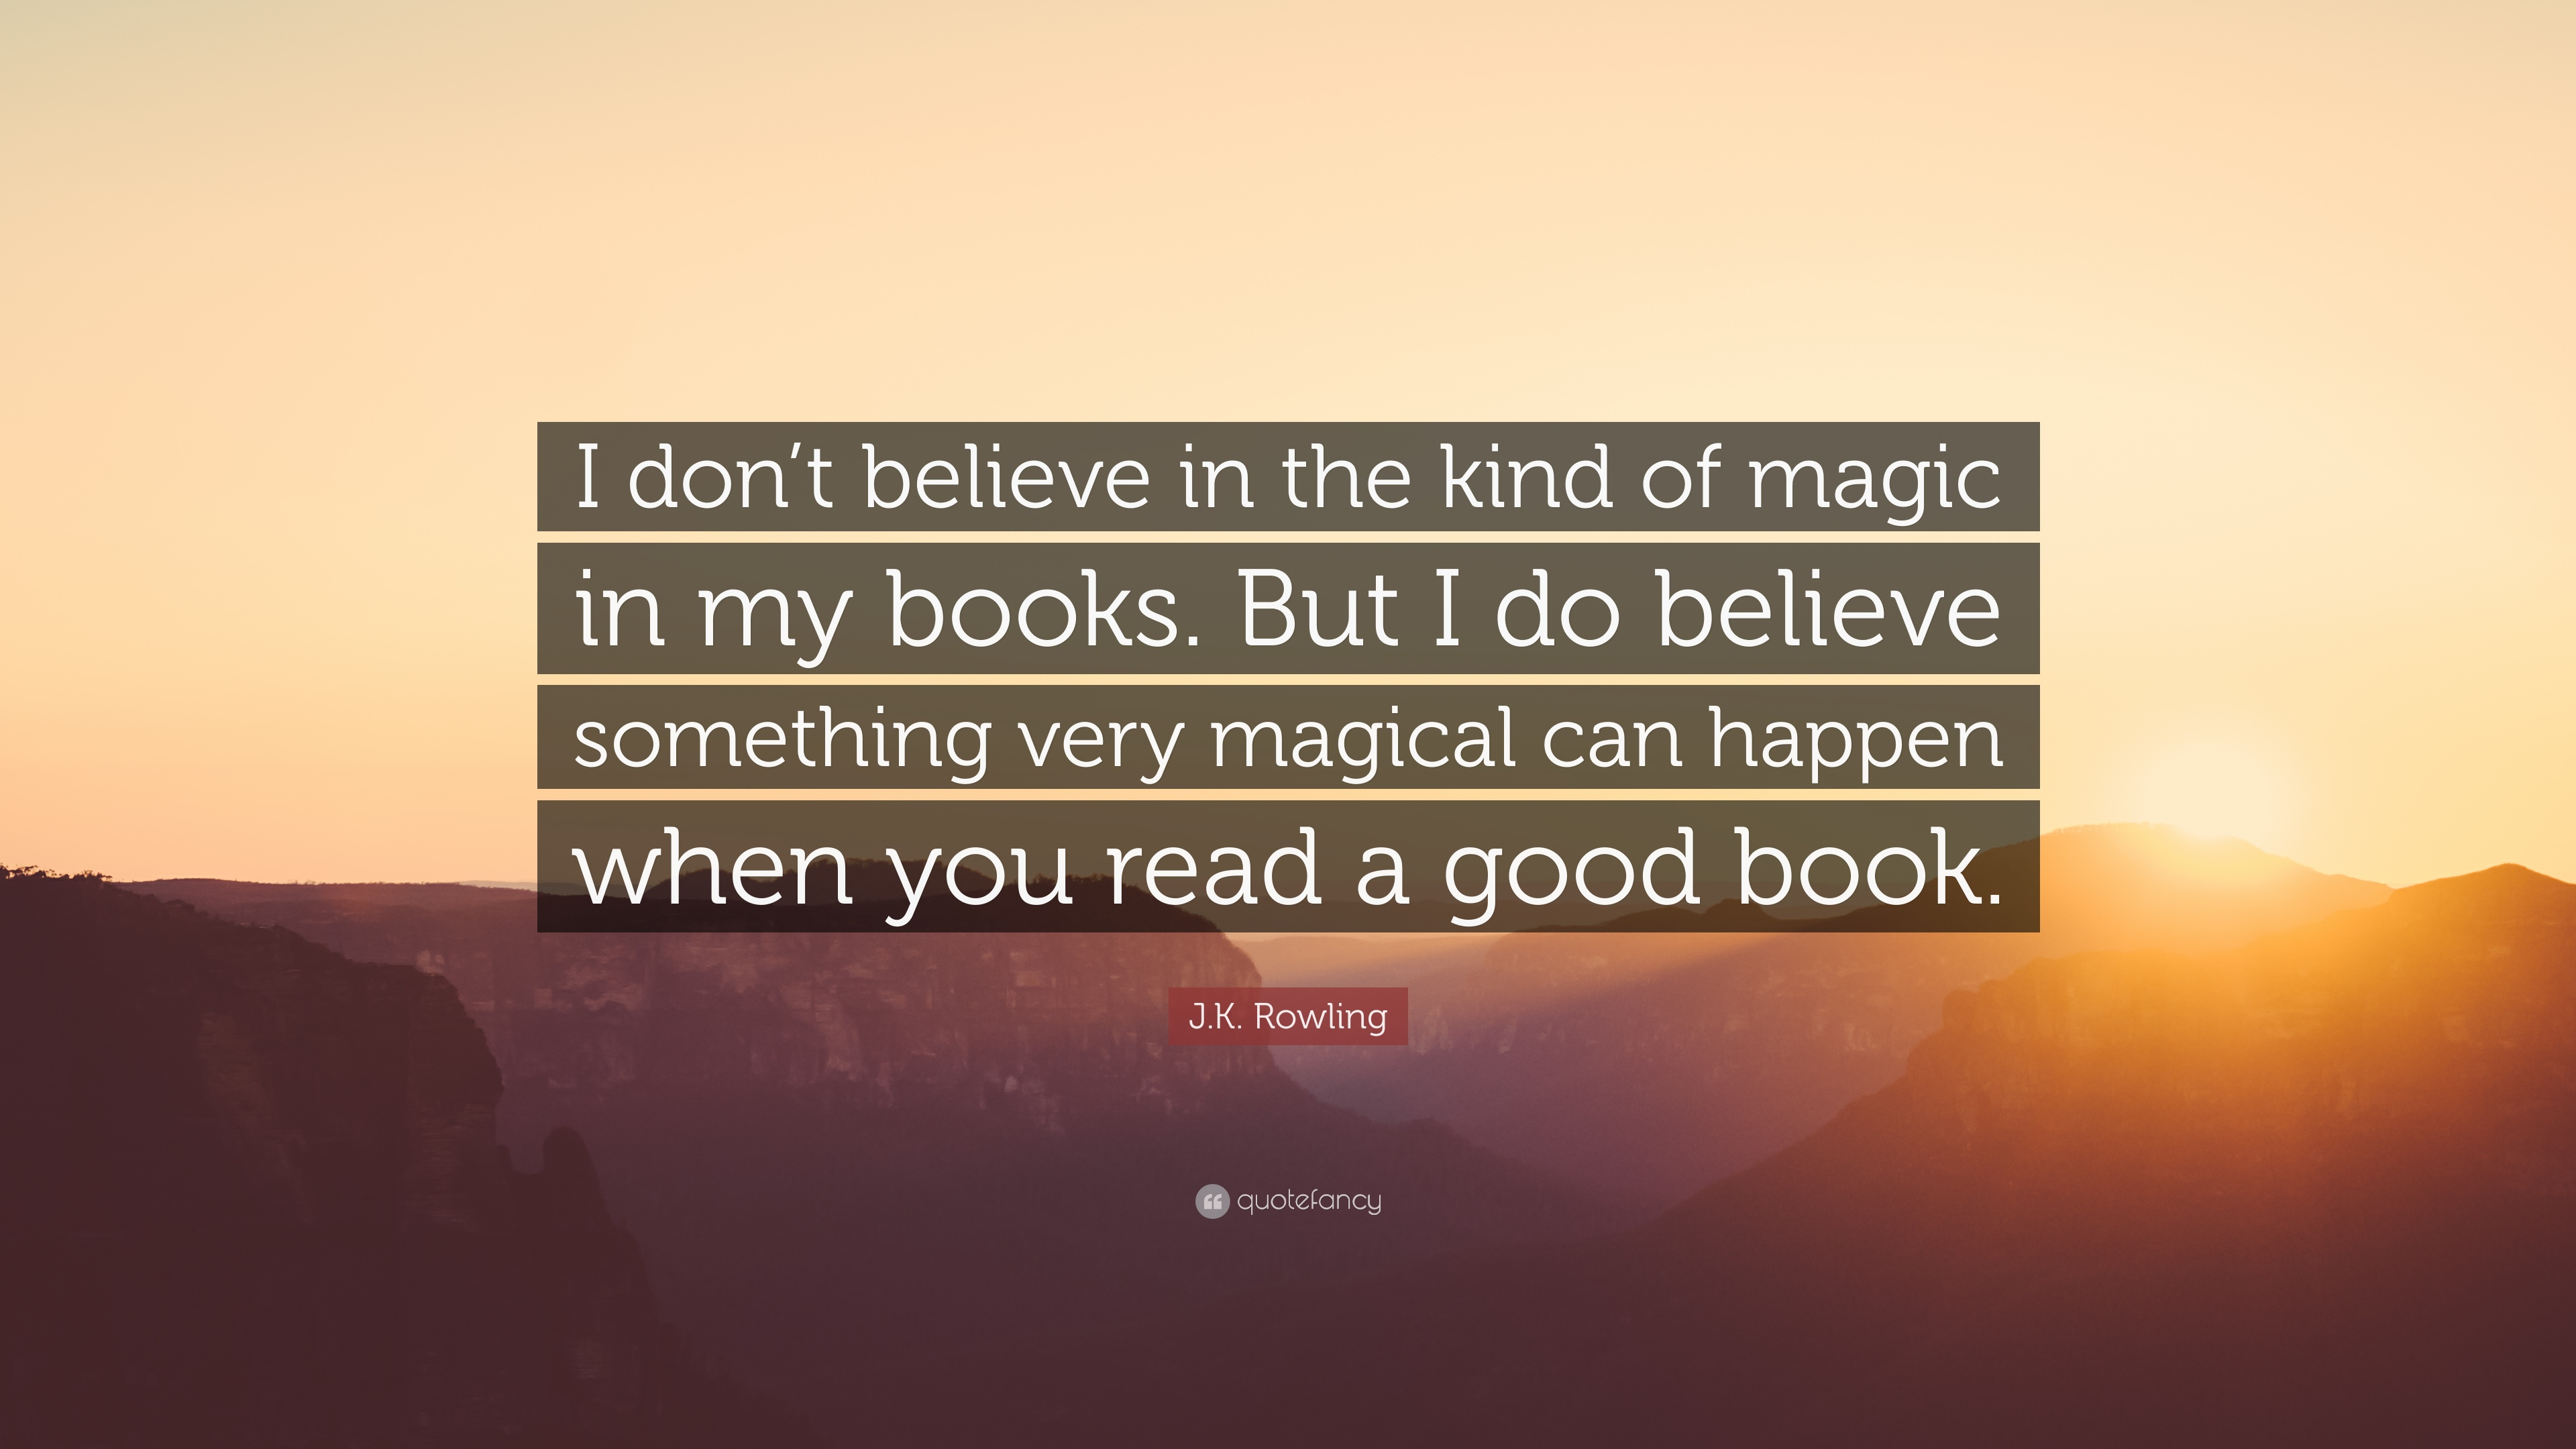 book does